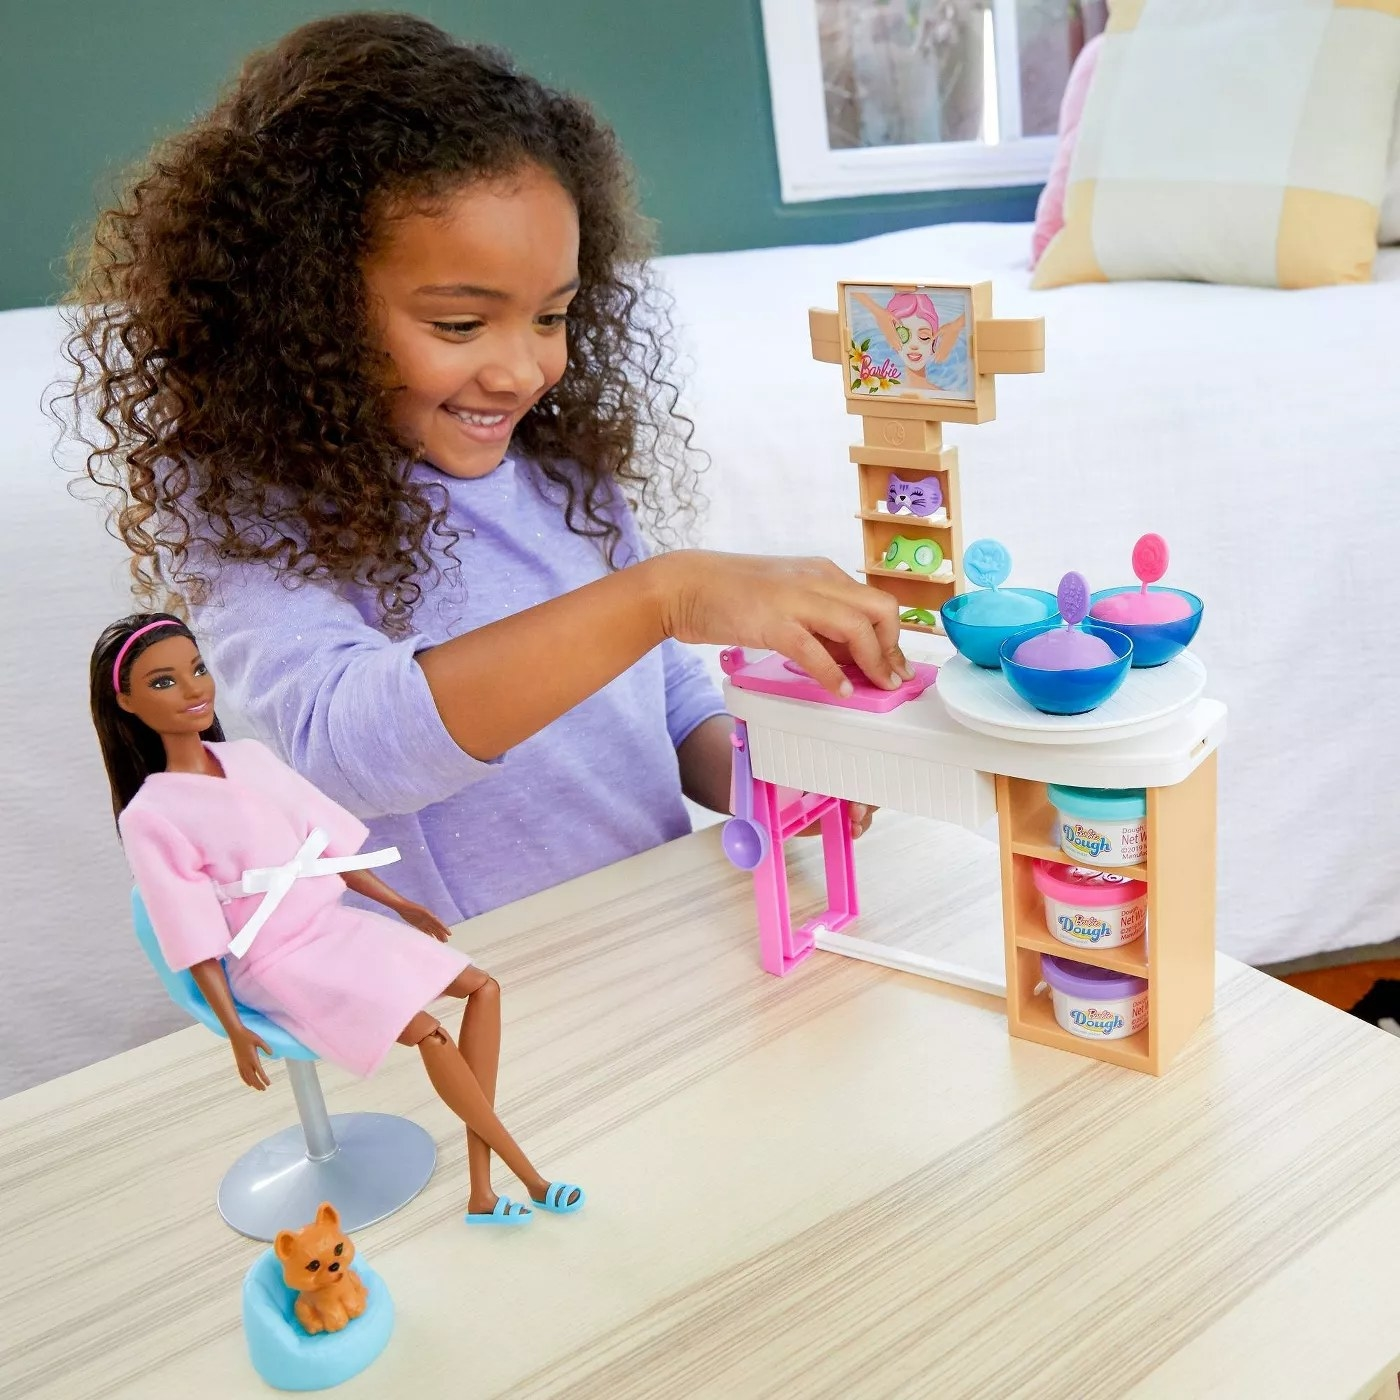 A child playing with a Barbie, her dog, and the face mask station that comes with two molds, three tubs of dough, a blemish marker, and 10 accessories